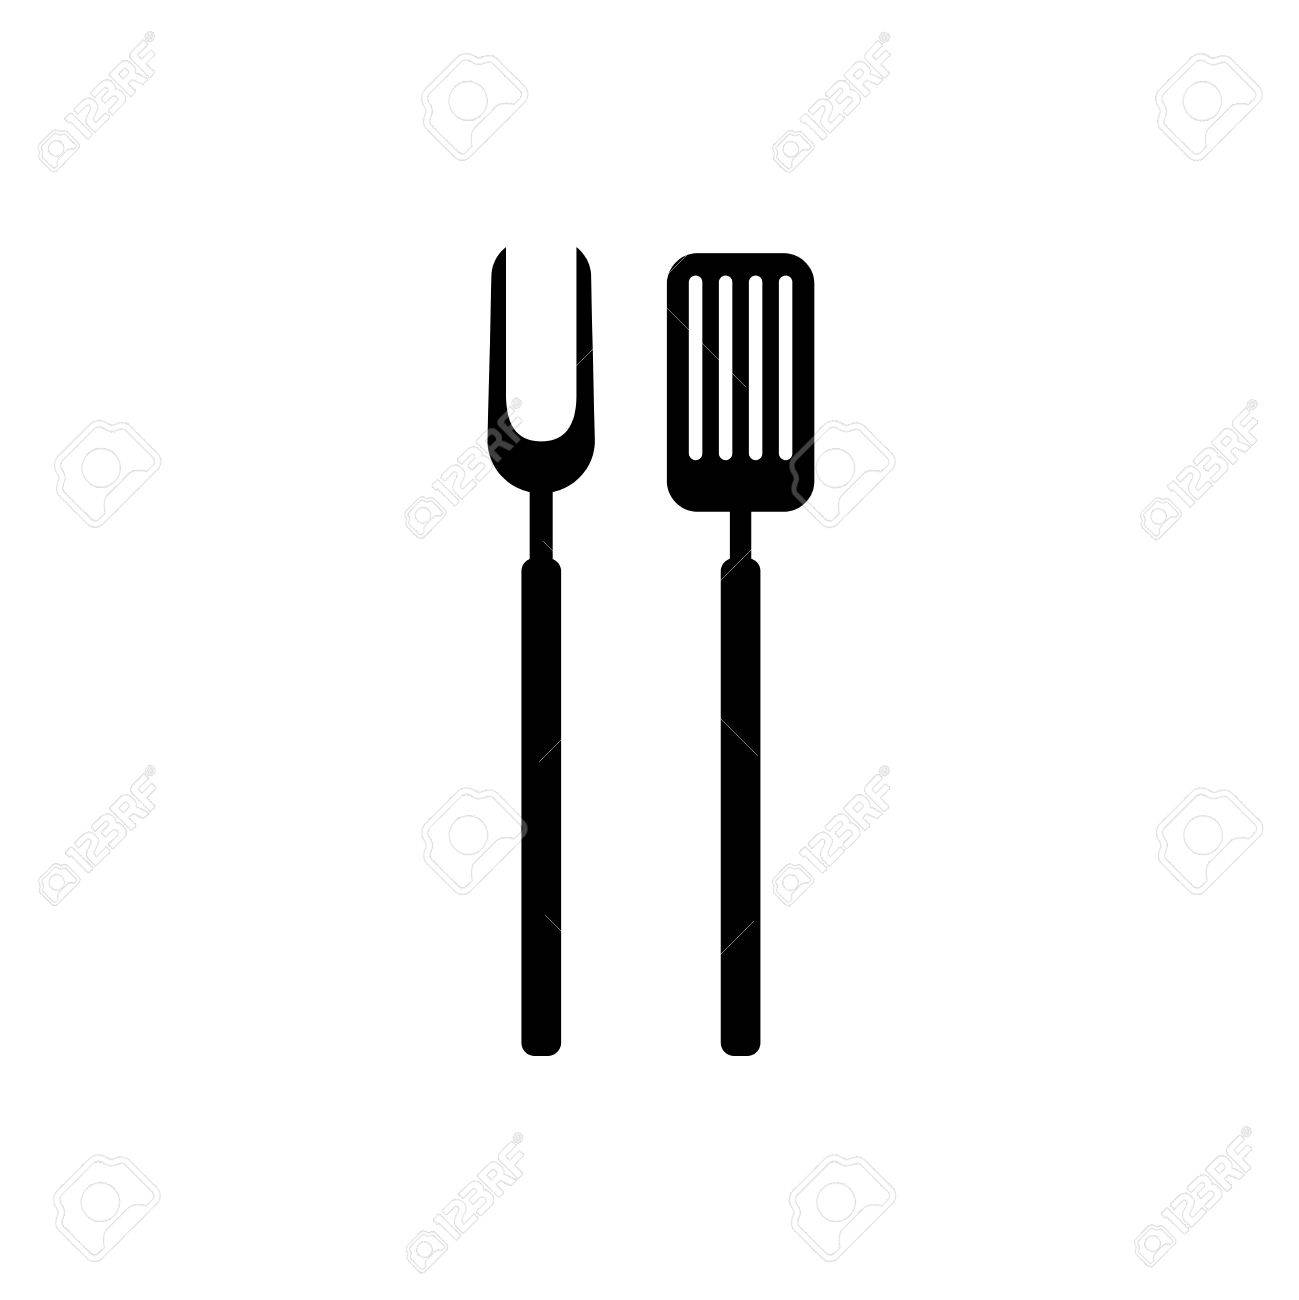 Fork clipart simple. Fork clipart simple. Bbq barbeque tools black